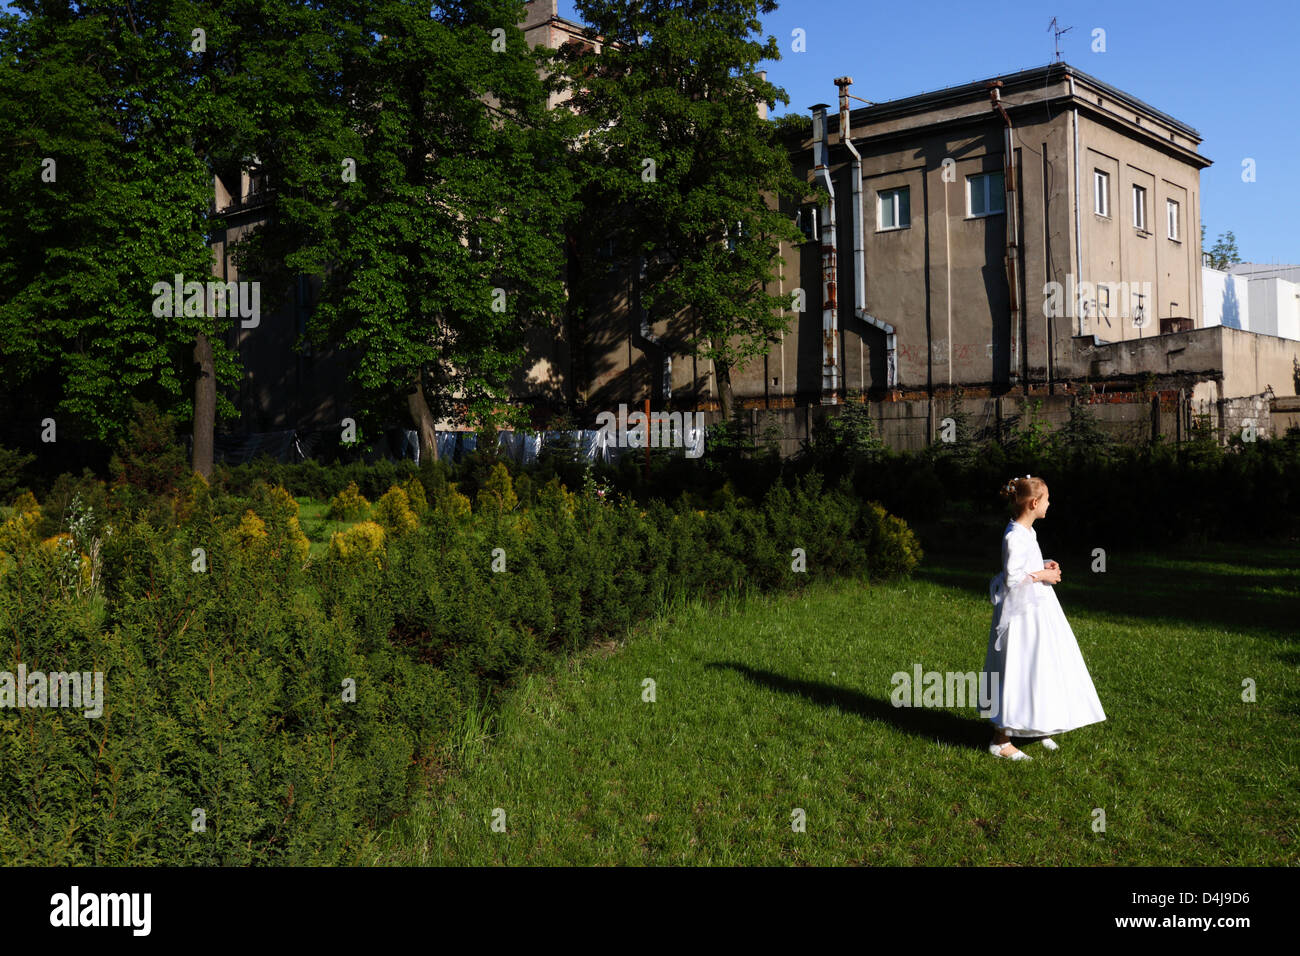 Girl in her First Communion dress in the backyard garden of an old church in Lodz, Poland - Stock Image